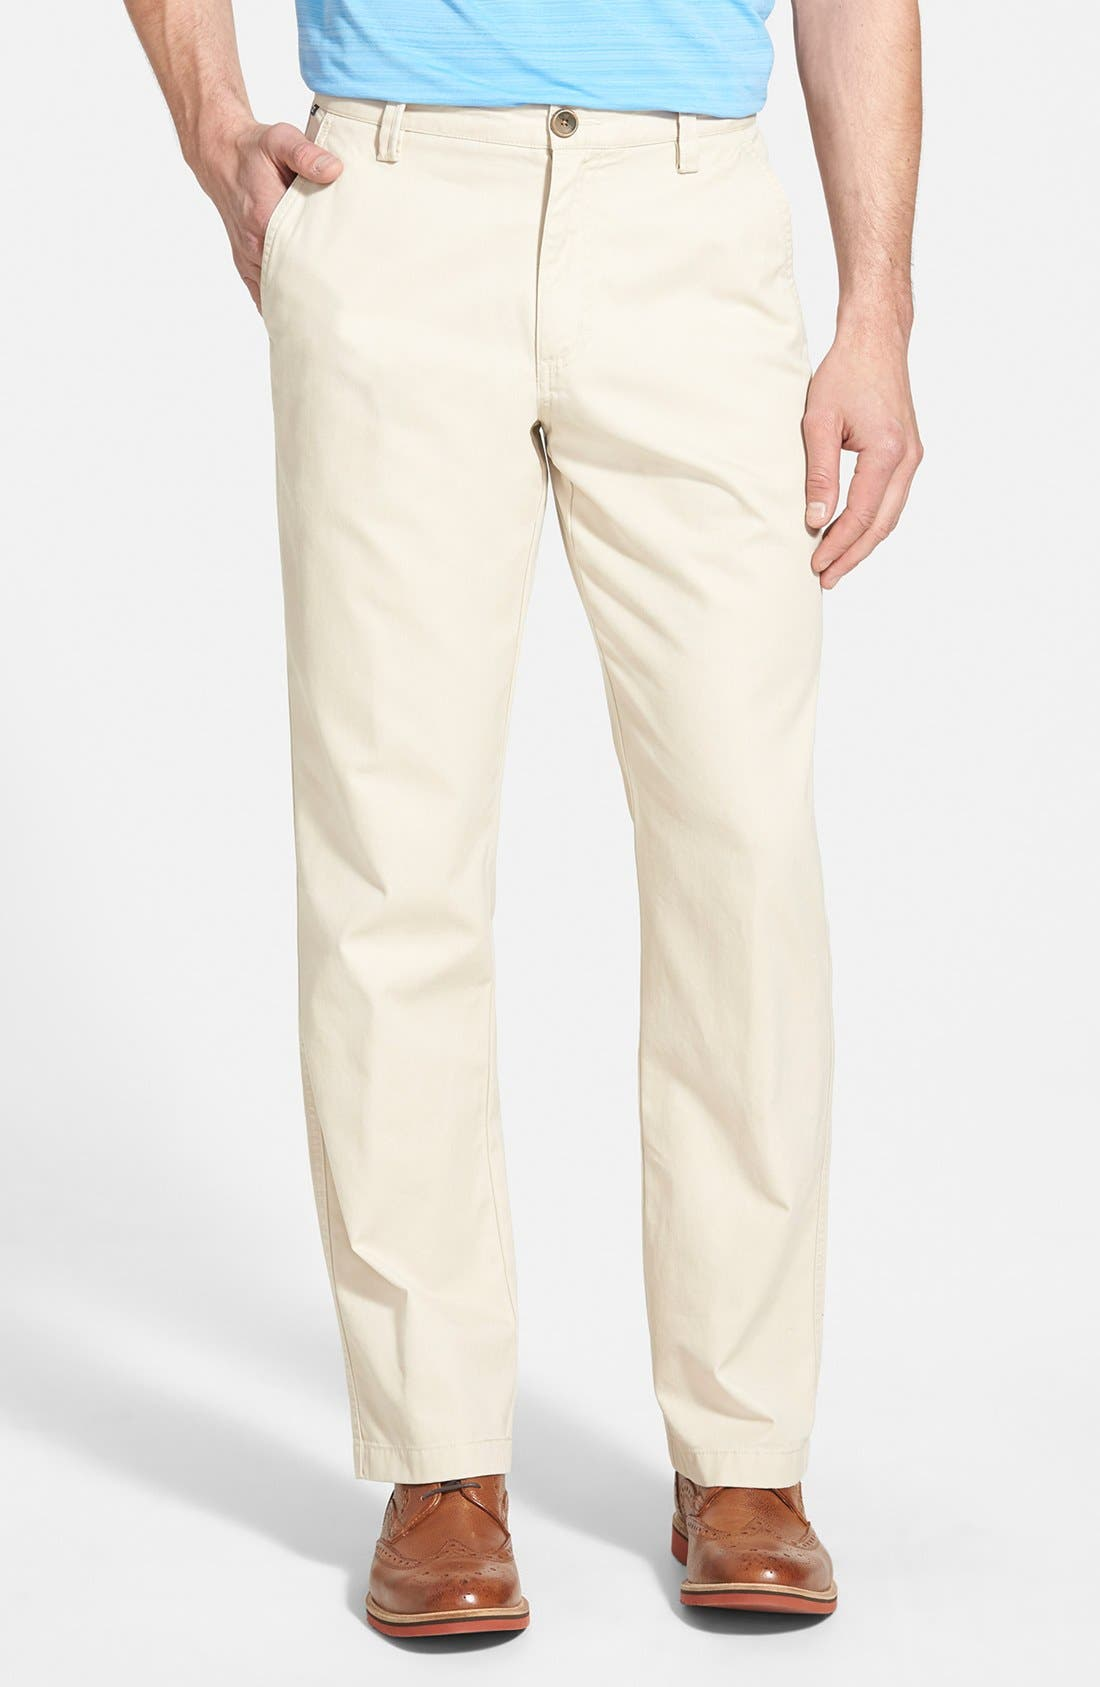 'Beckett' Straight Leg Washed Cotton Pants,                         Main,                         color, SAND